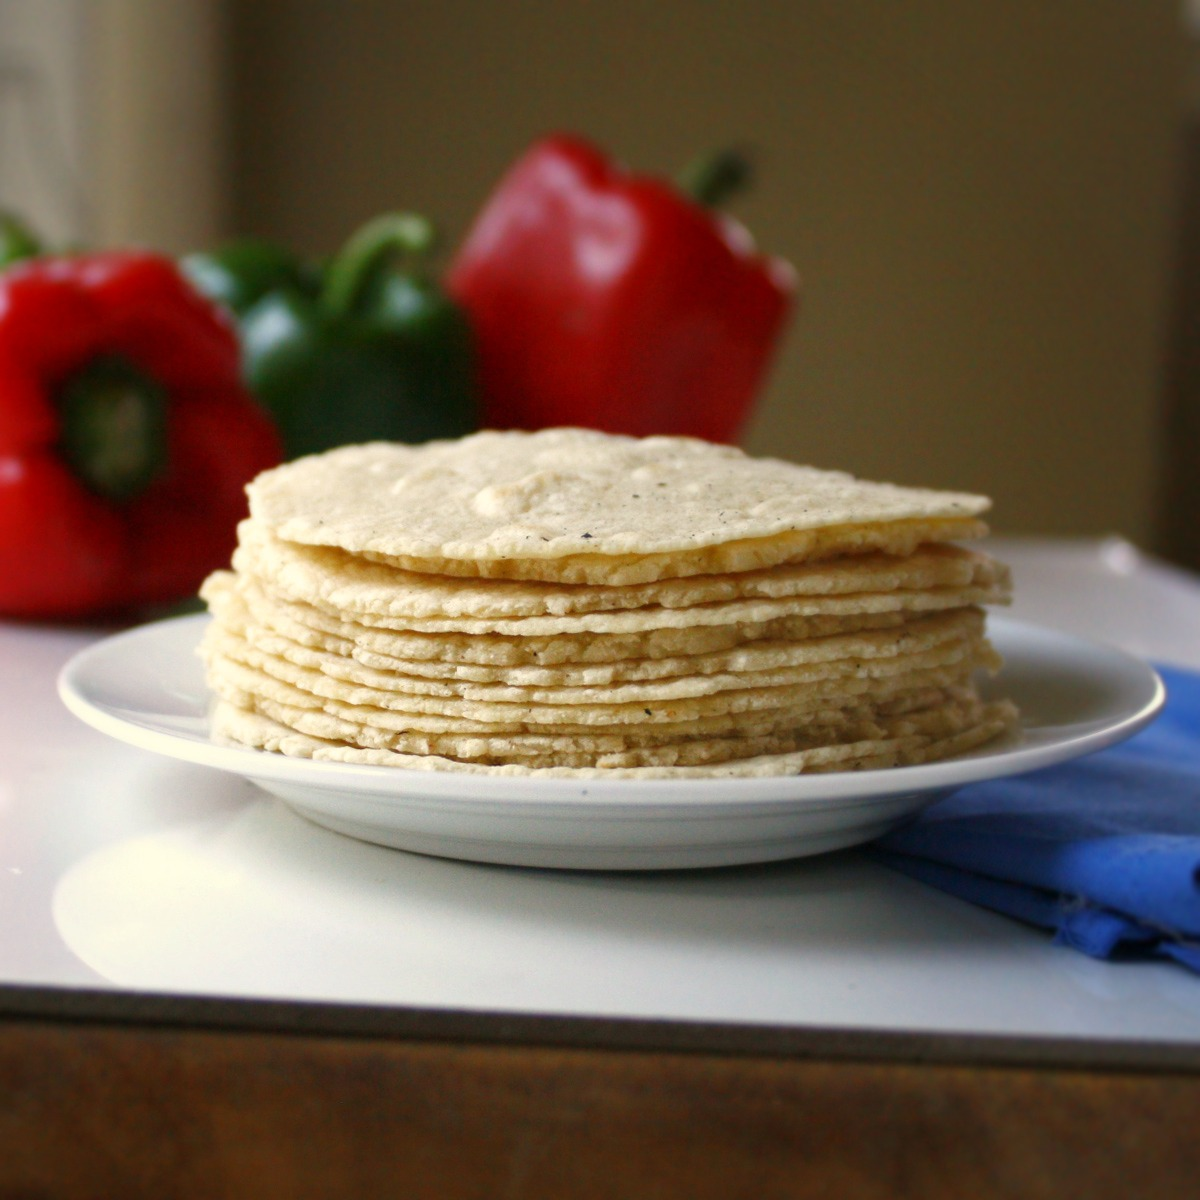 Mealpod: Homemade Corn Tortillas